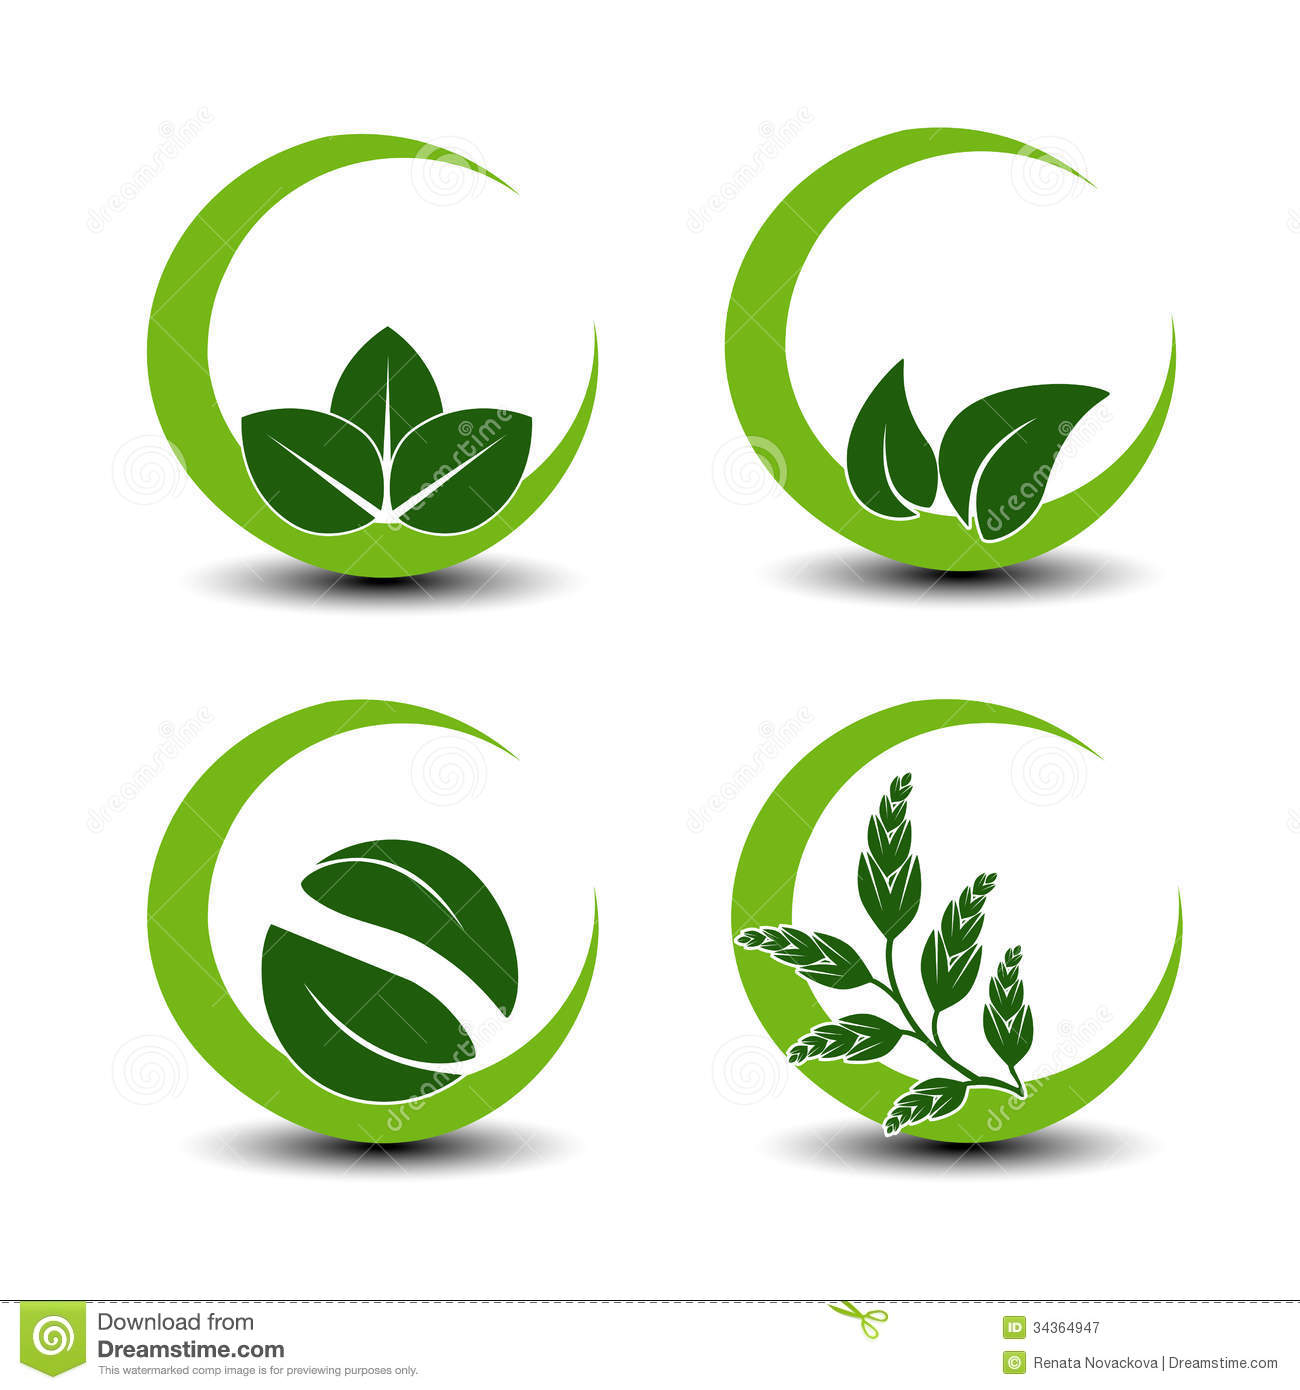 Natural Symbols With Leaf - Circular Nature Icon Royalty Free Stock ...